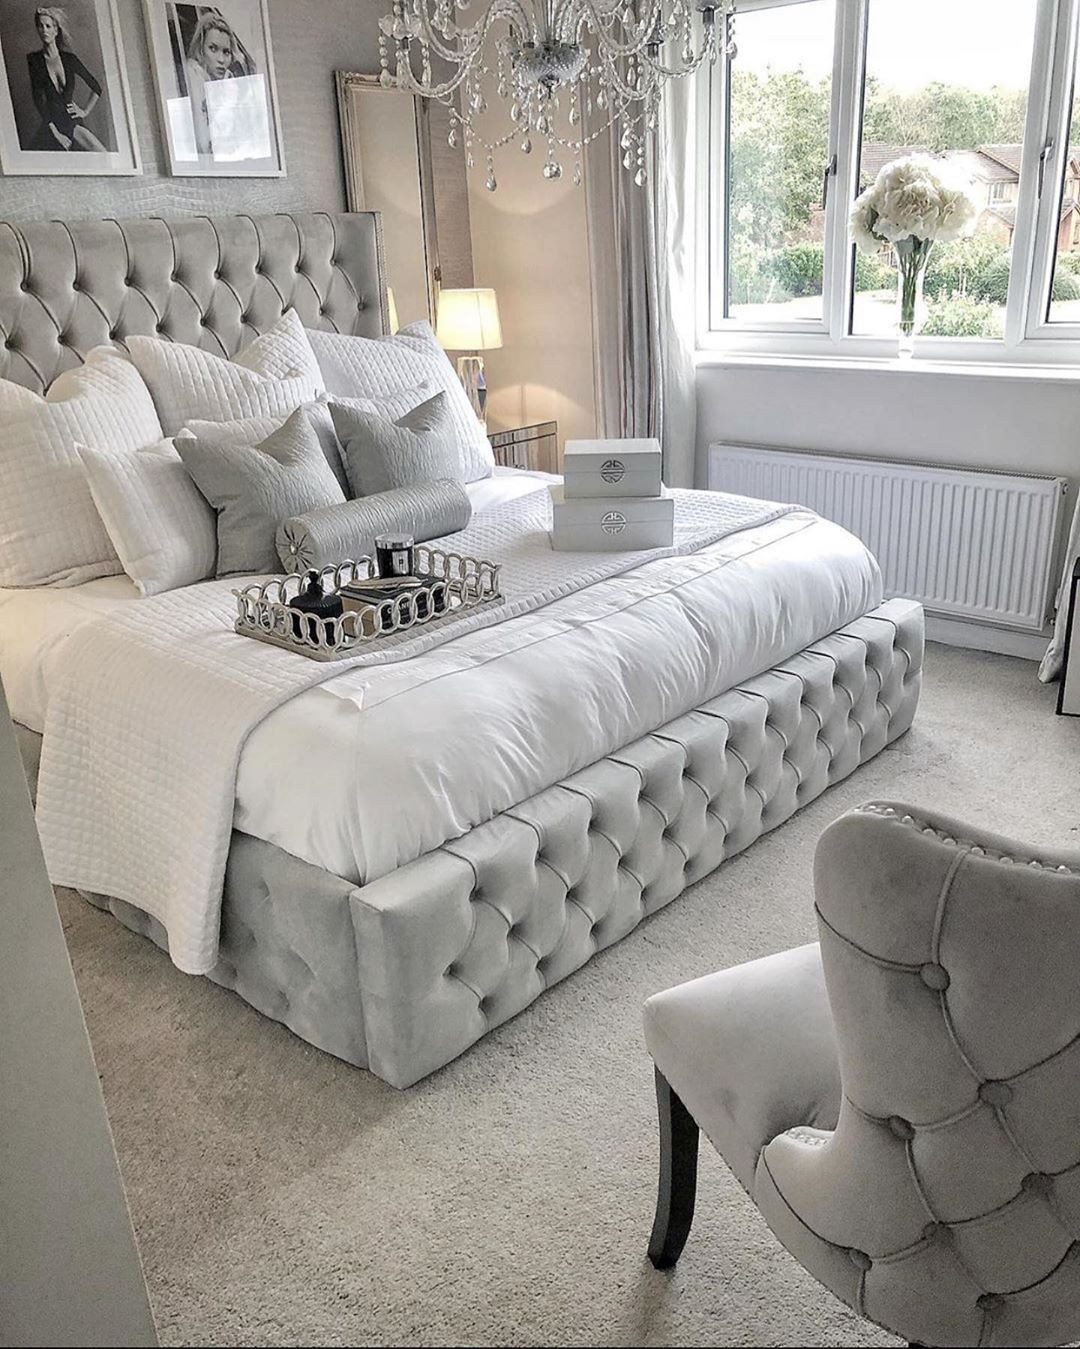 Decor Inspiration By Ty On Instagram Follow Mrstylovesdecor For Glam Decor Ideas And Inspiration Silver Bedroom Decor Bedroom Interior Silver Bedroom